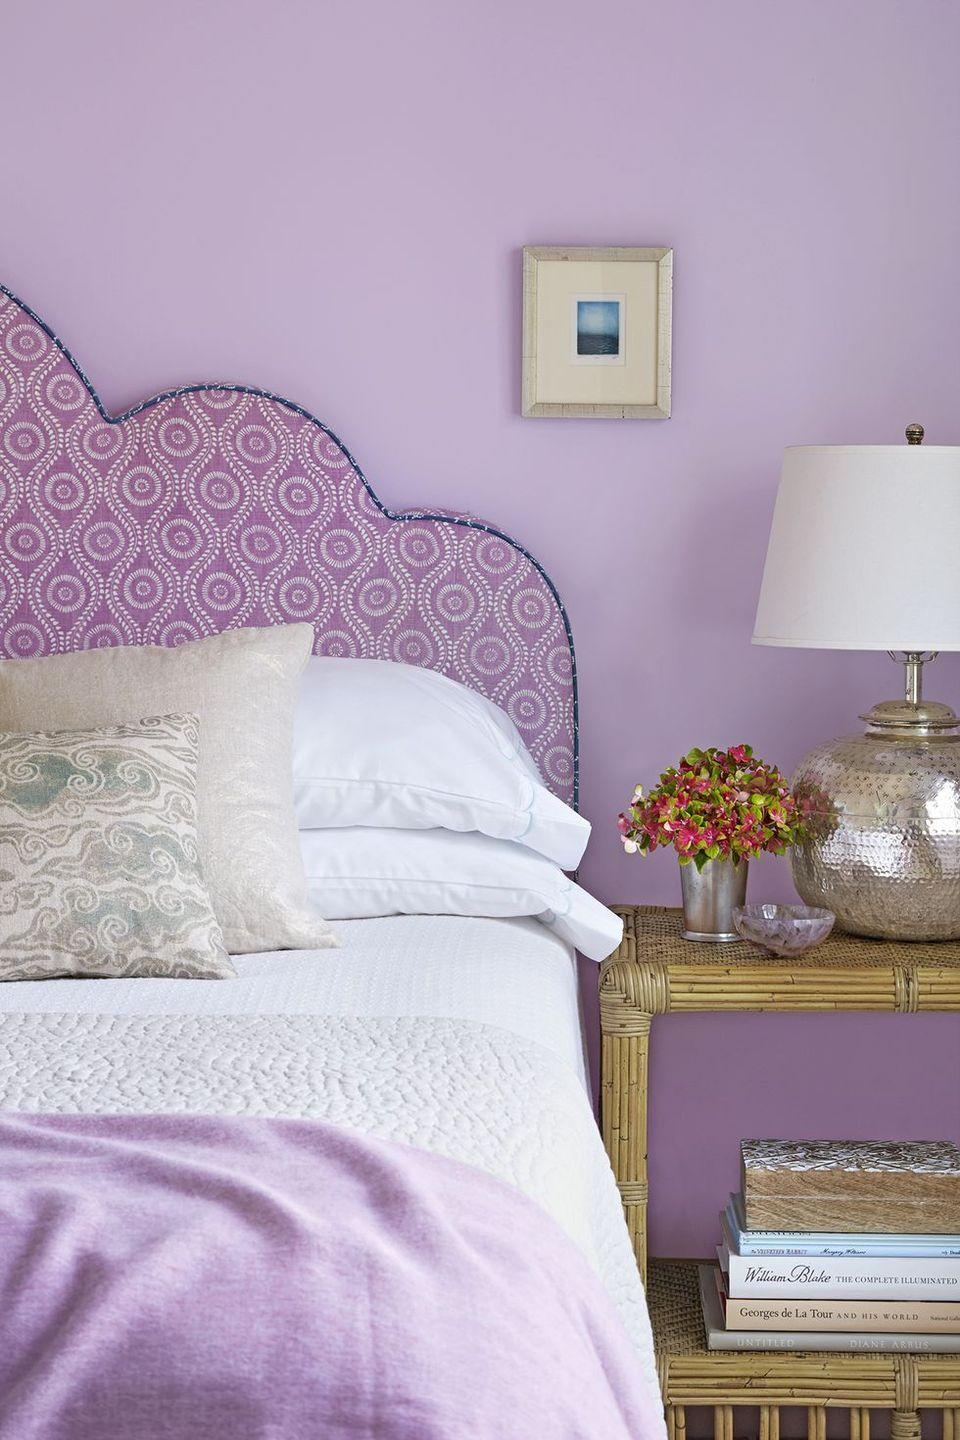 <p>Sticking to one color doesn't have to be boring. Layer different shades of a hue, like lavender, to create visual interest in a bedroom. </p>